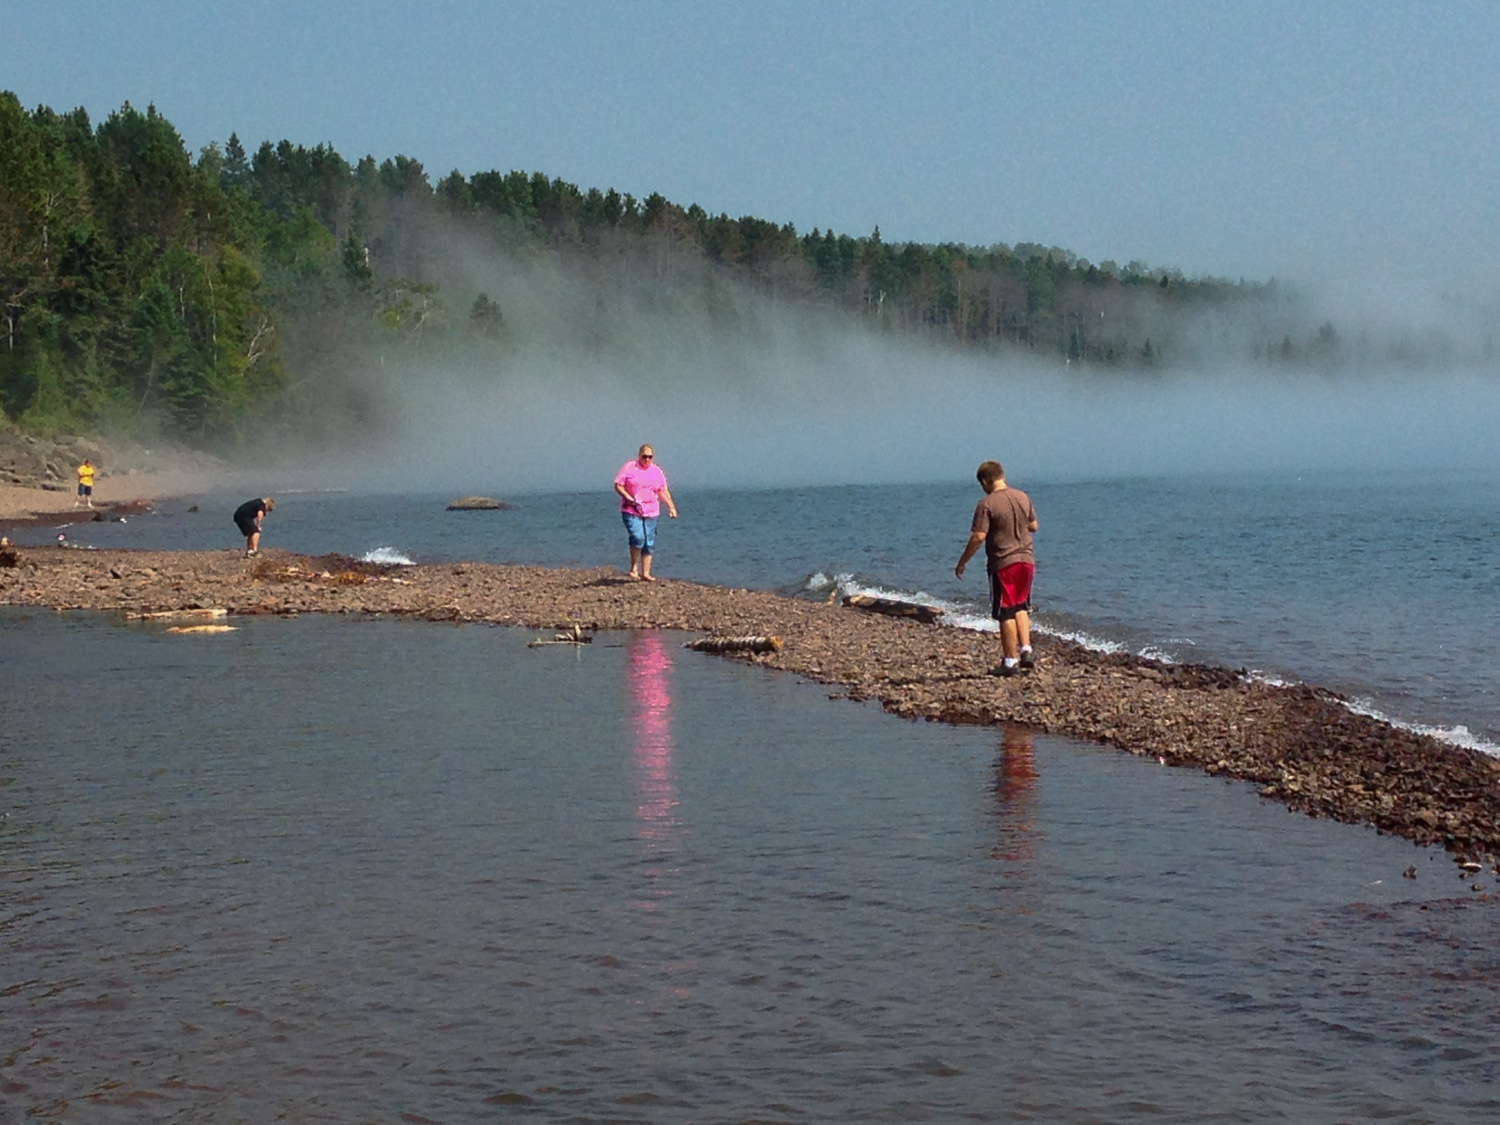 The family playing on the rocky beach of Lake Superior as the fog rolls in and out.